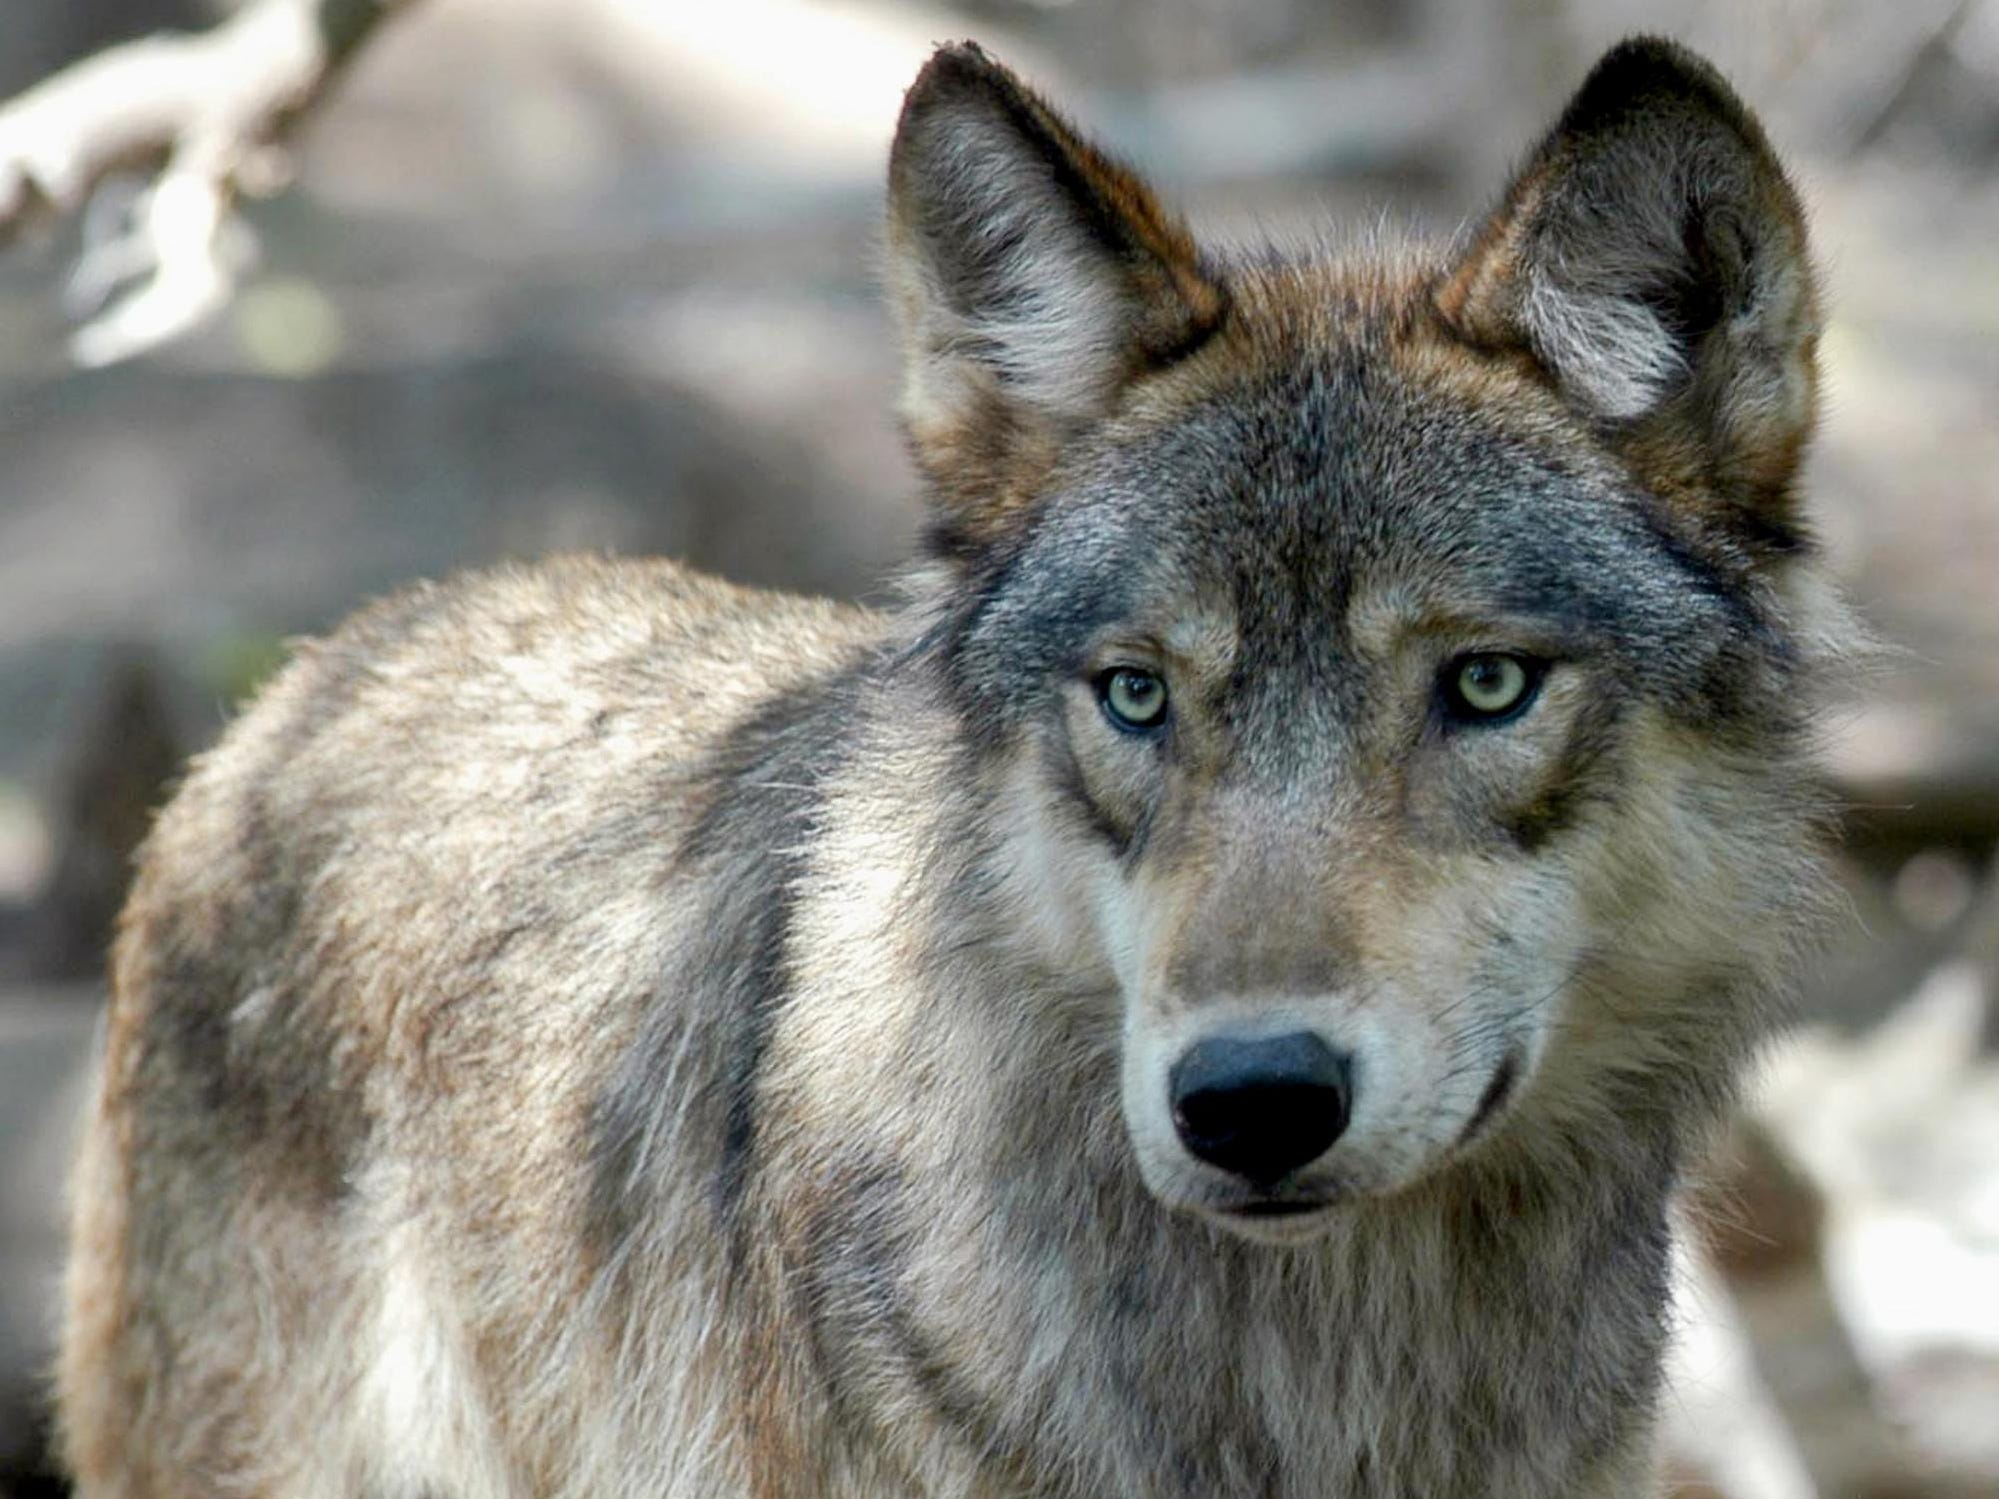 Why did Michigan order wolf killings?